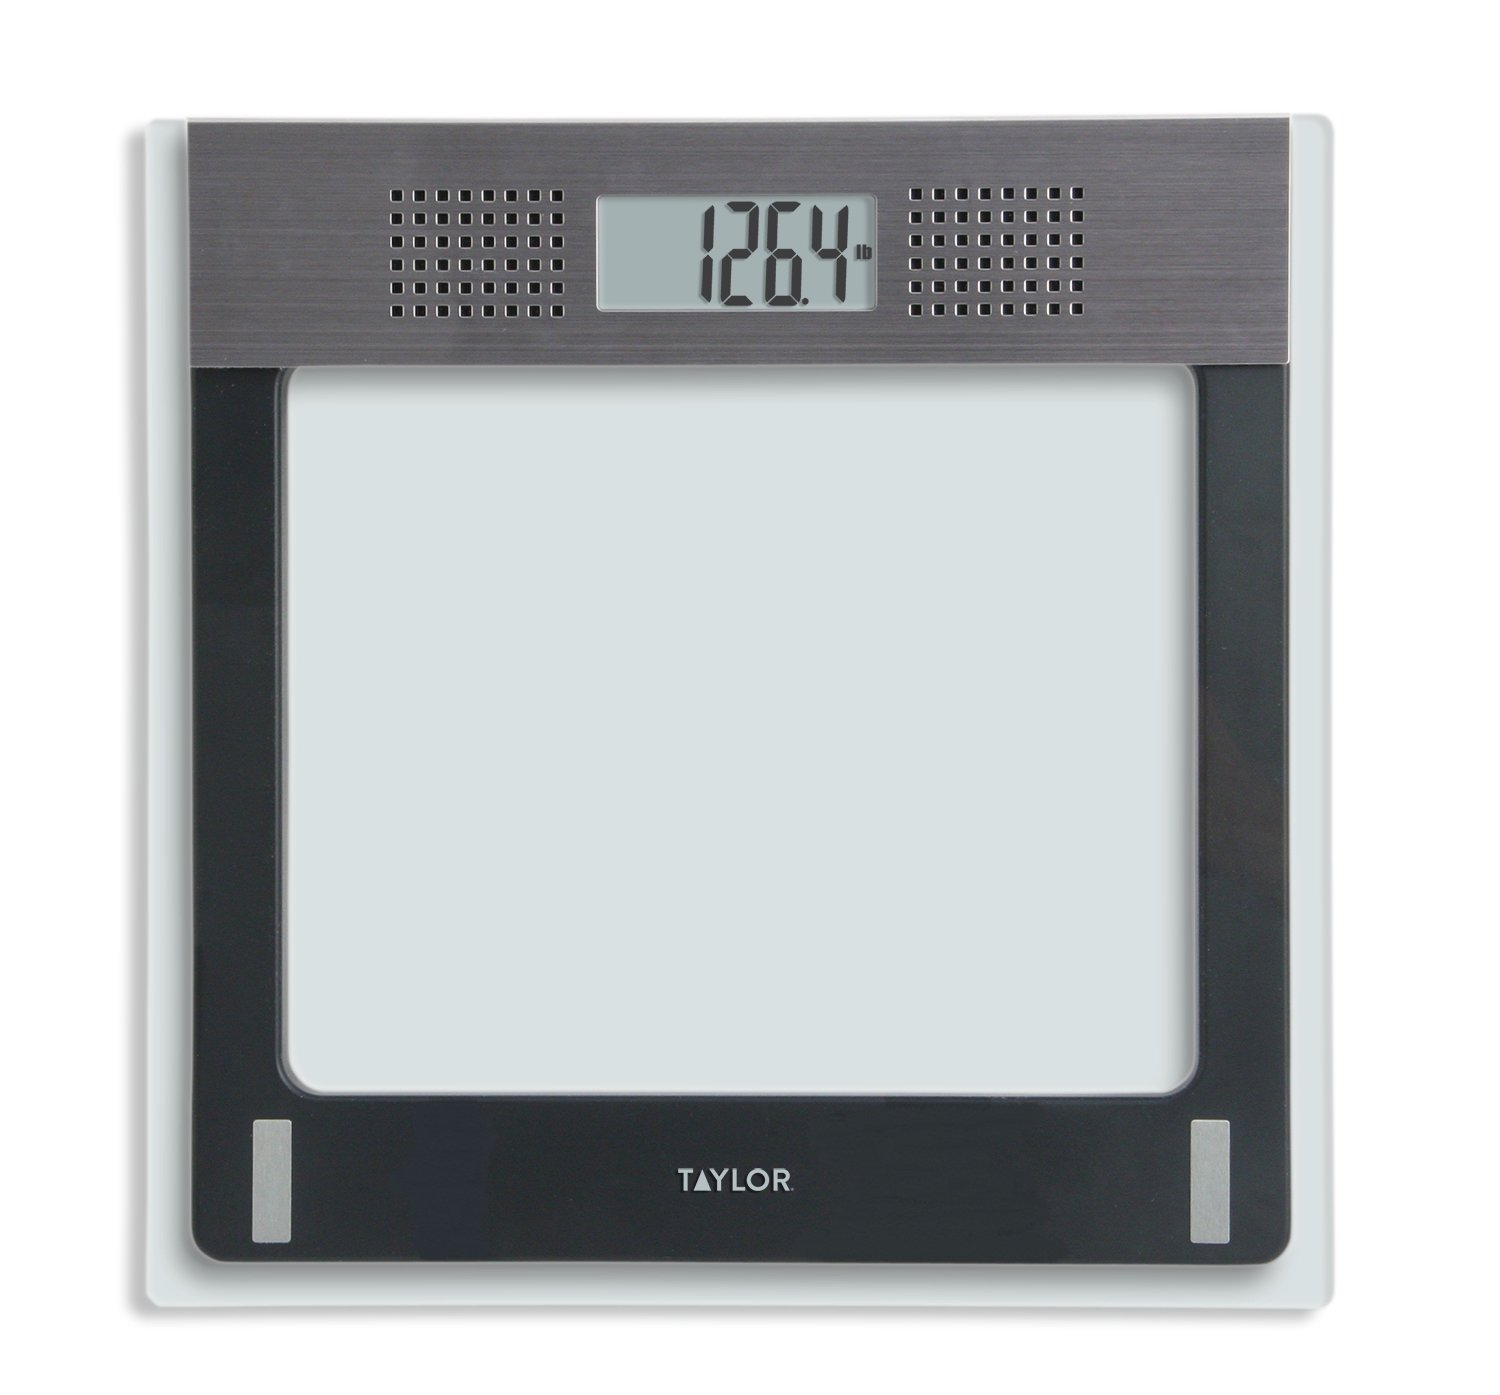 Taylor Electronic Glass Talking Bathroom Scale, 440 Lb. Capacity by taylor